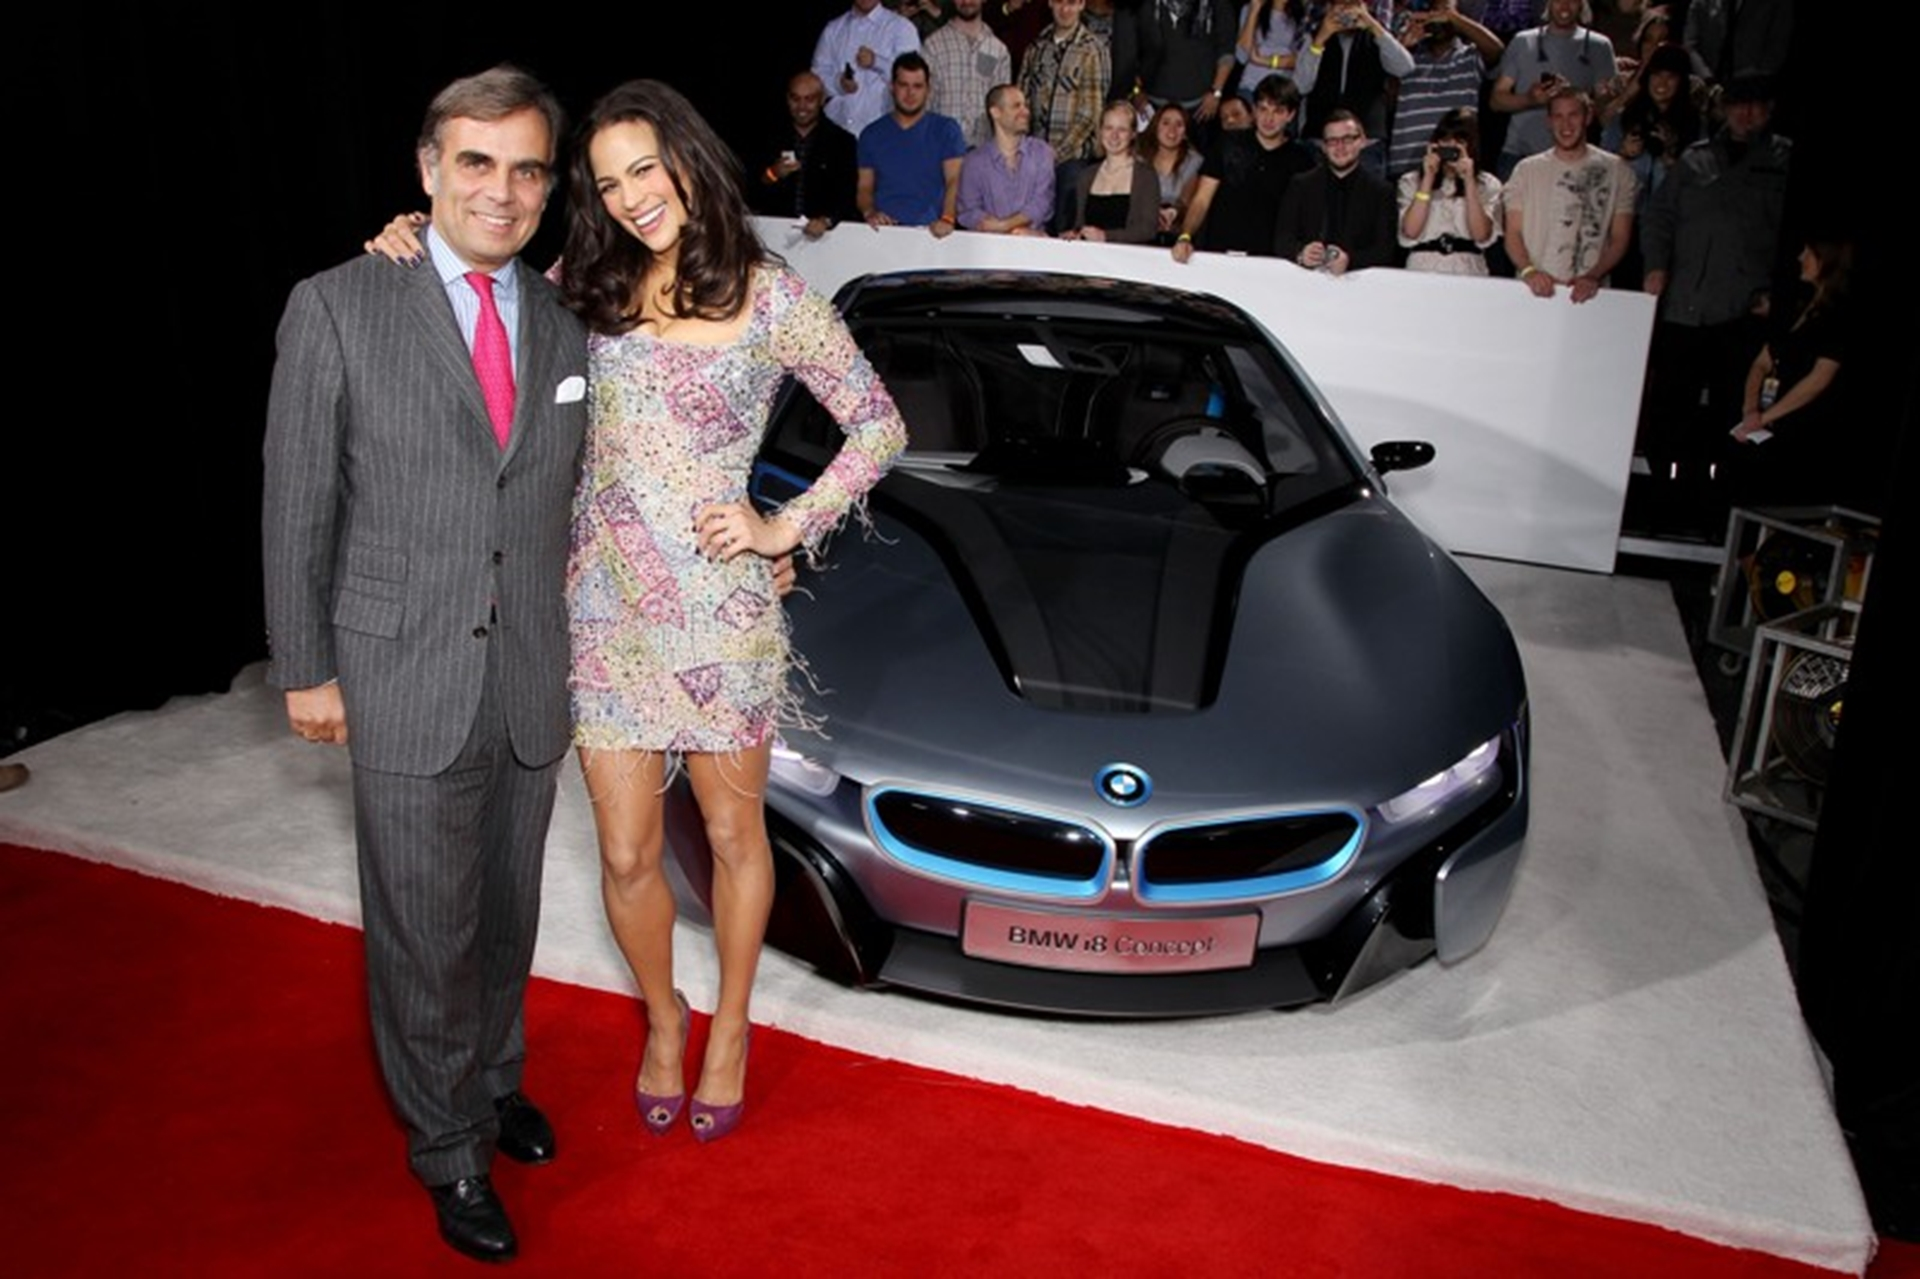 Mission Impossible 4 Car and Paula Patton